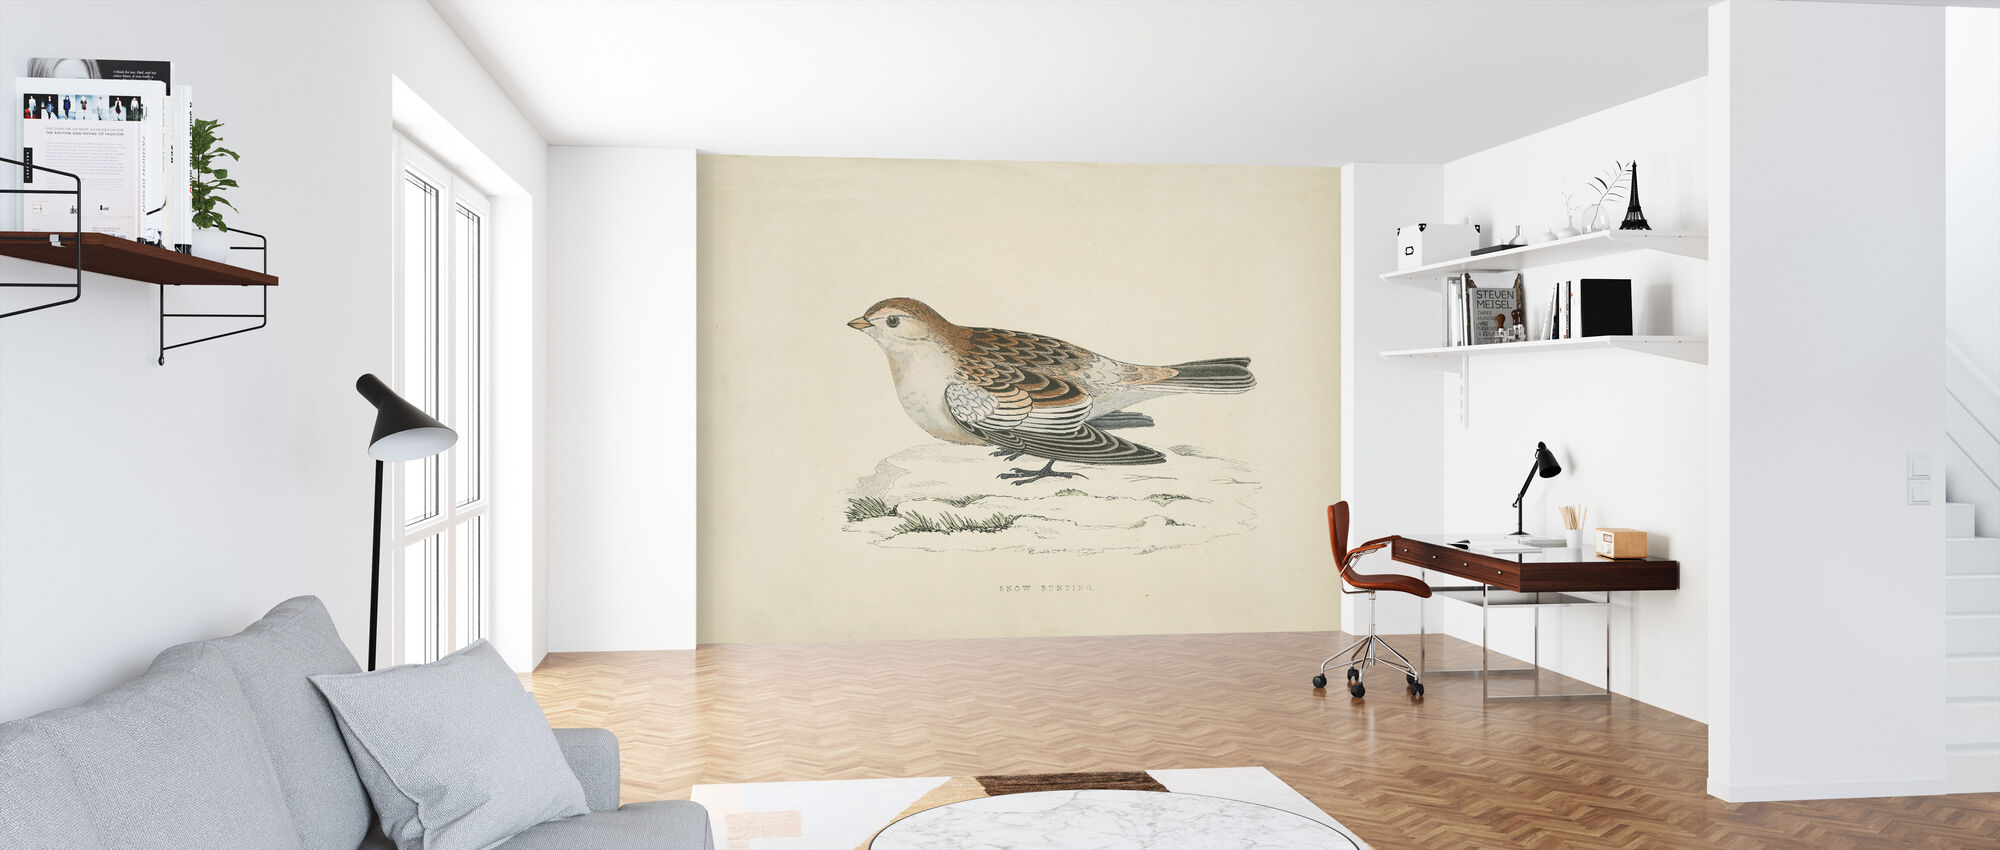 Snow Bunting Print - Wallpaper - Office